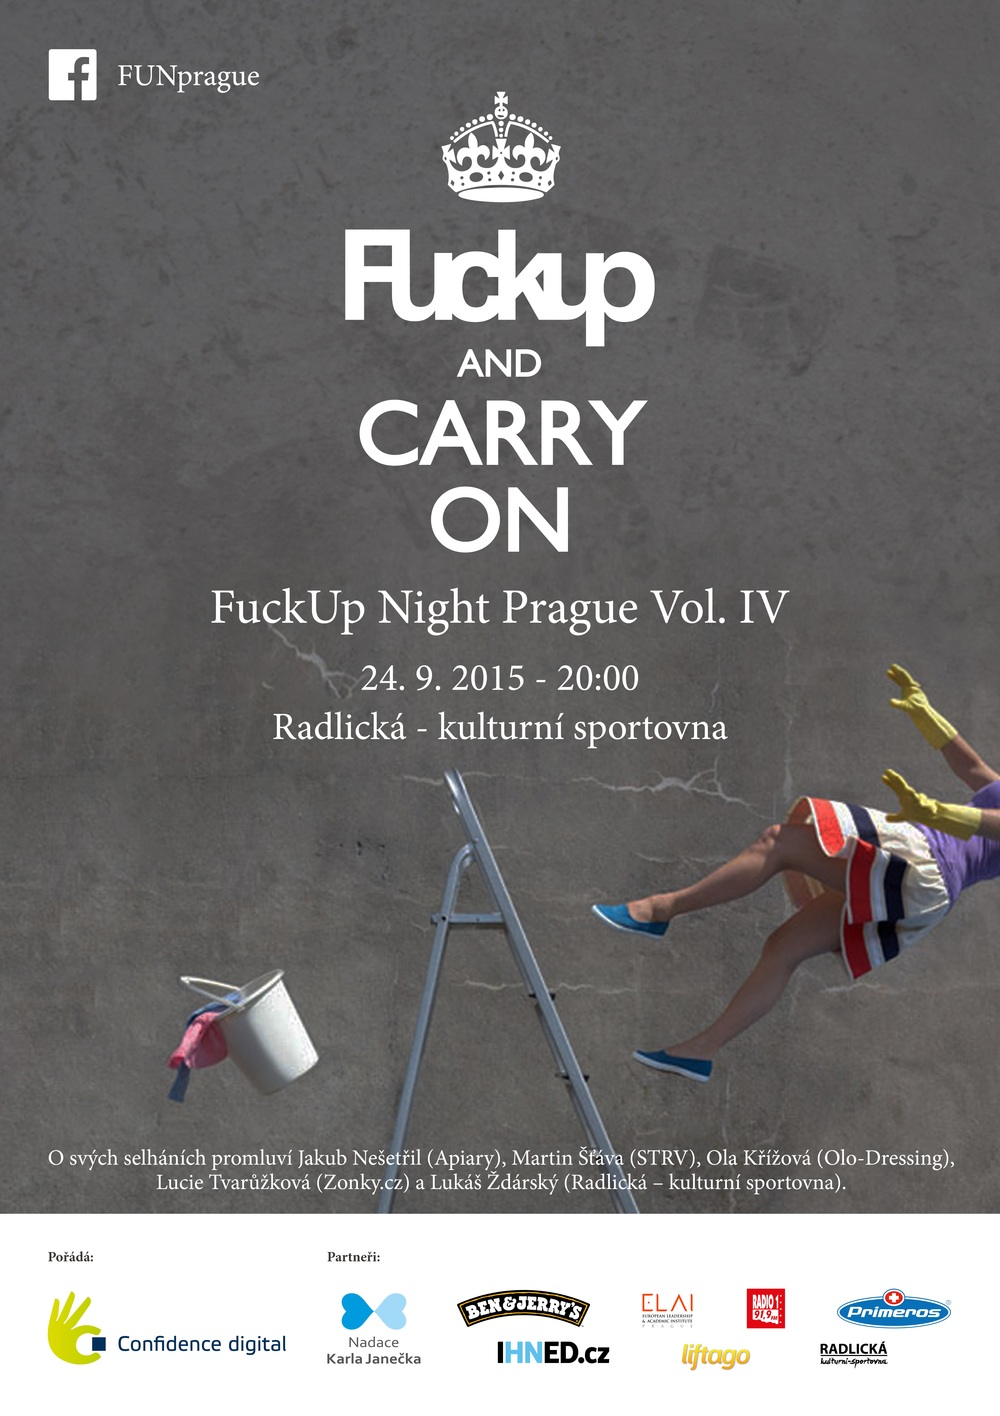 FuckUp Nights Prague Vol IV poster